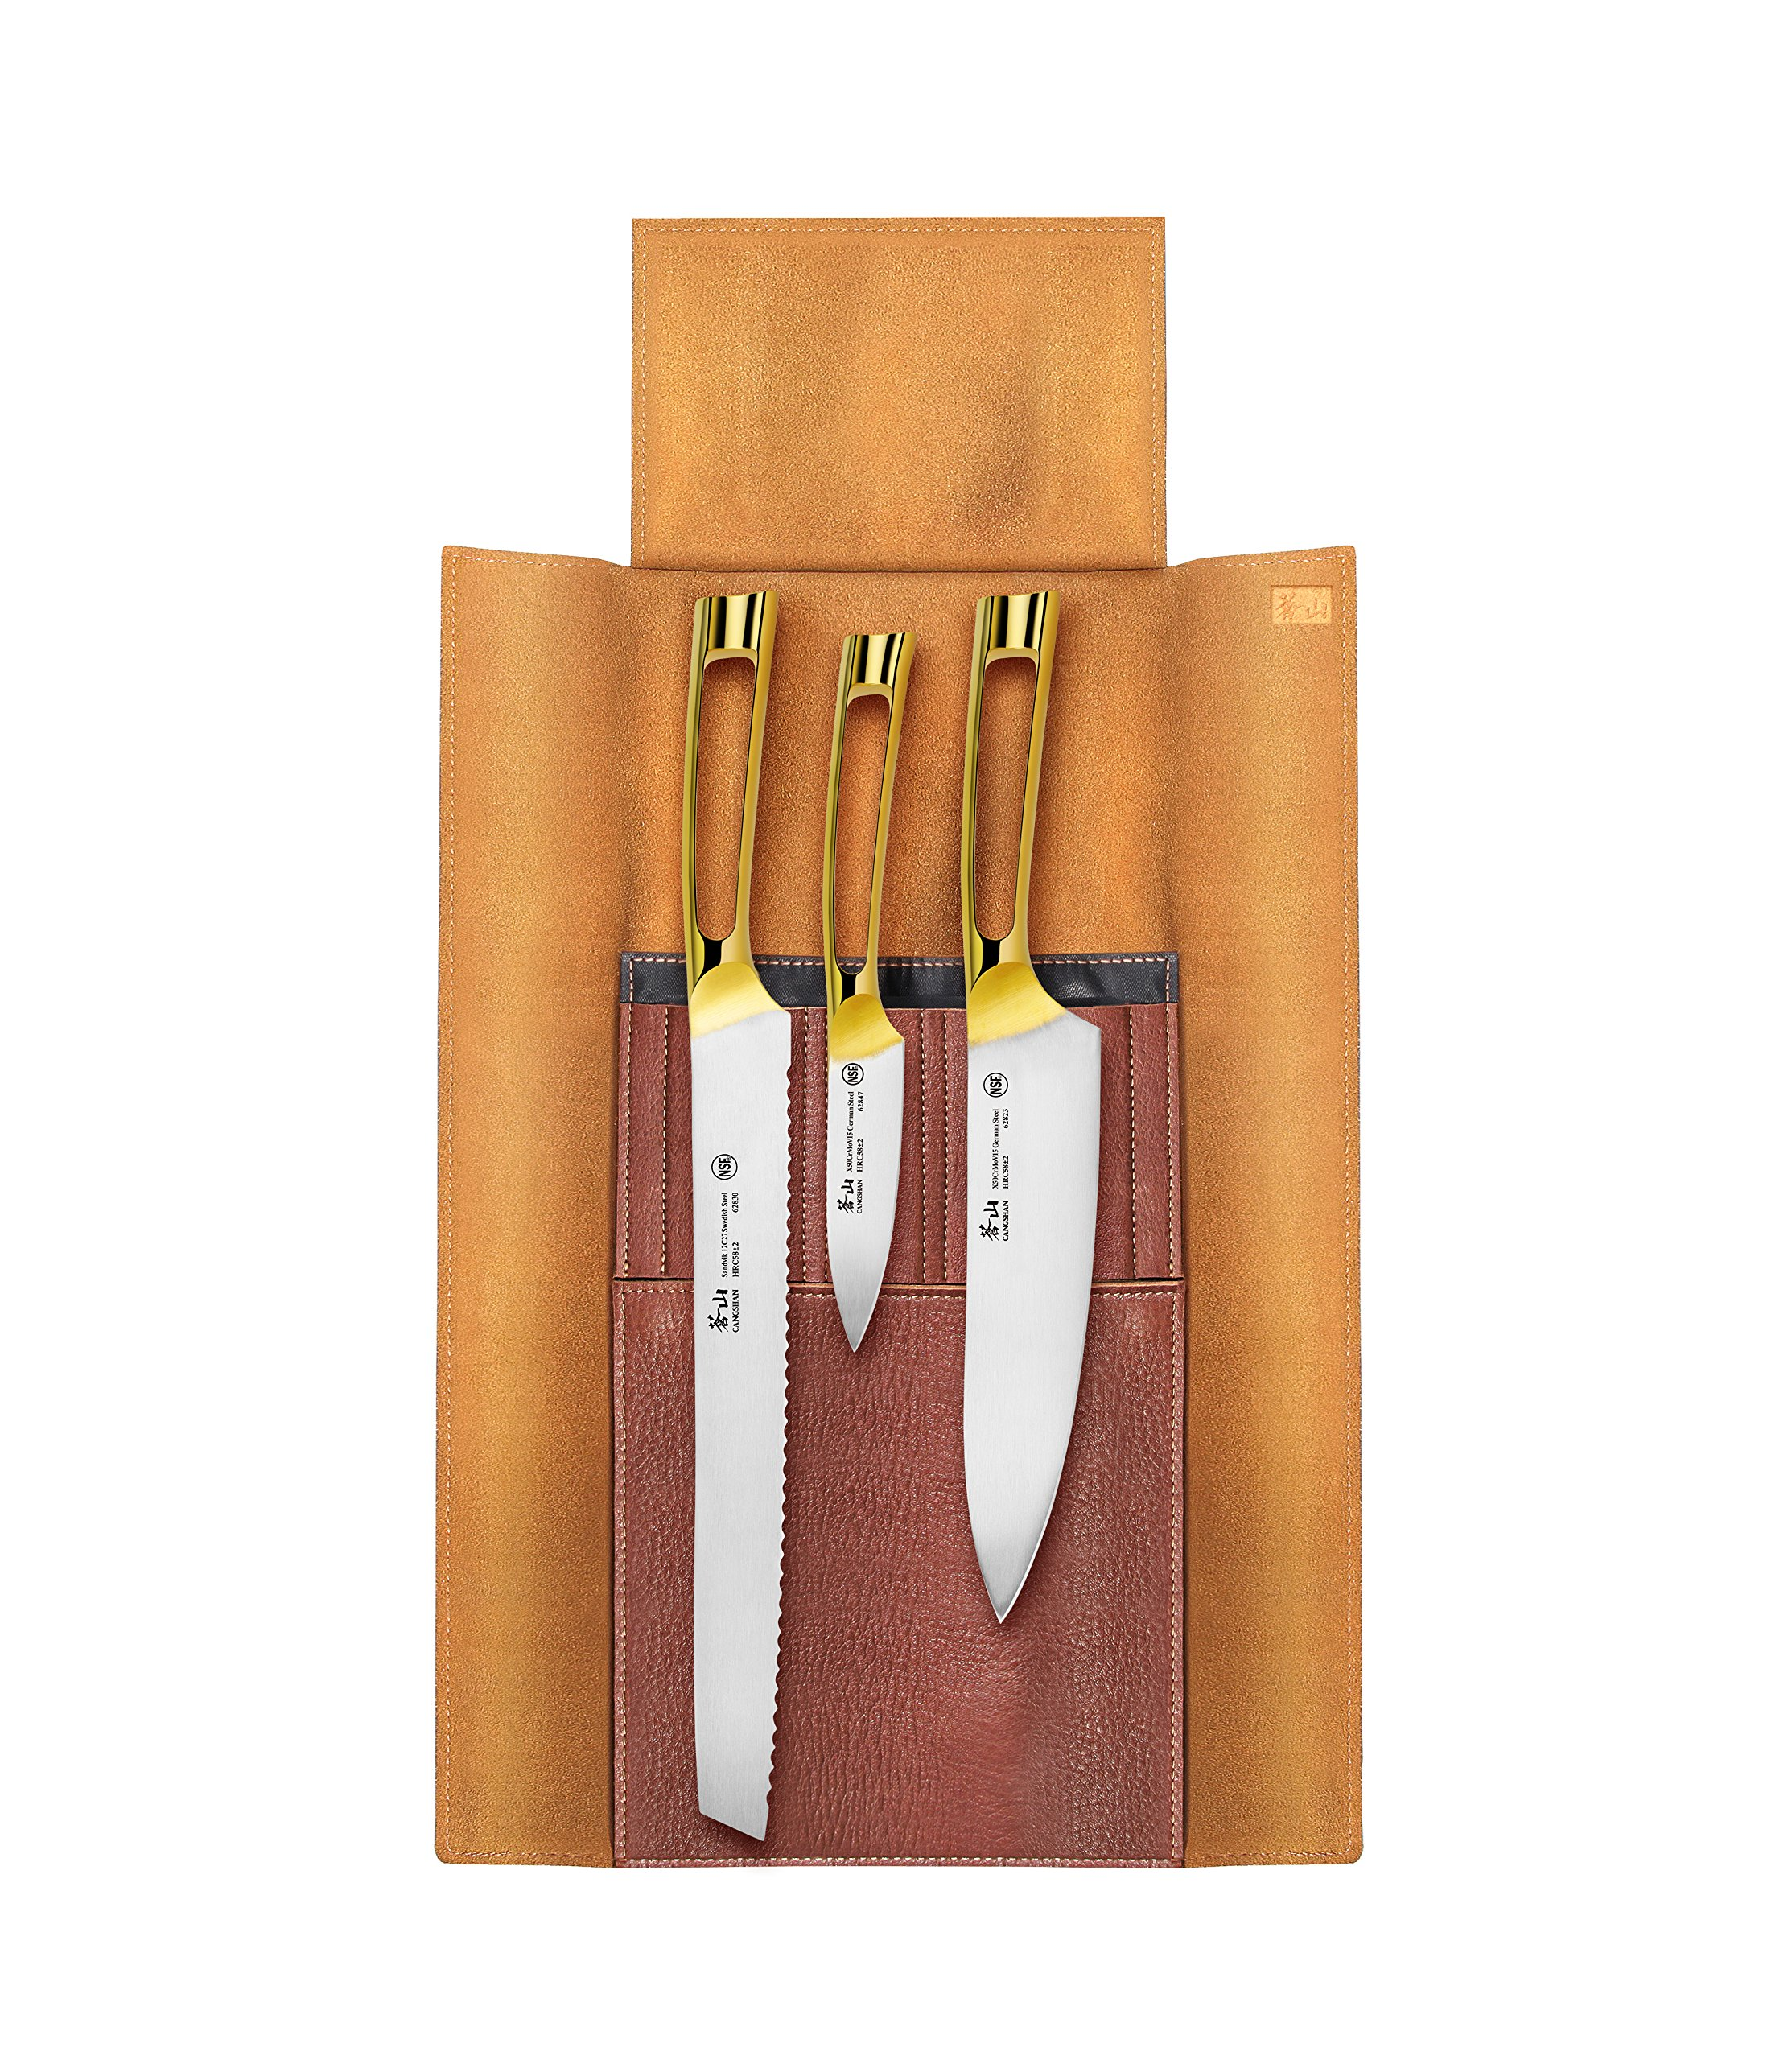 Cangshan N1 Series 62618 4-Piece Leather Roll Knife Set, Gold